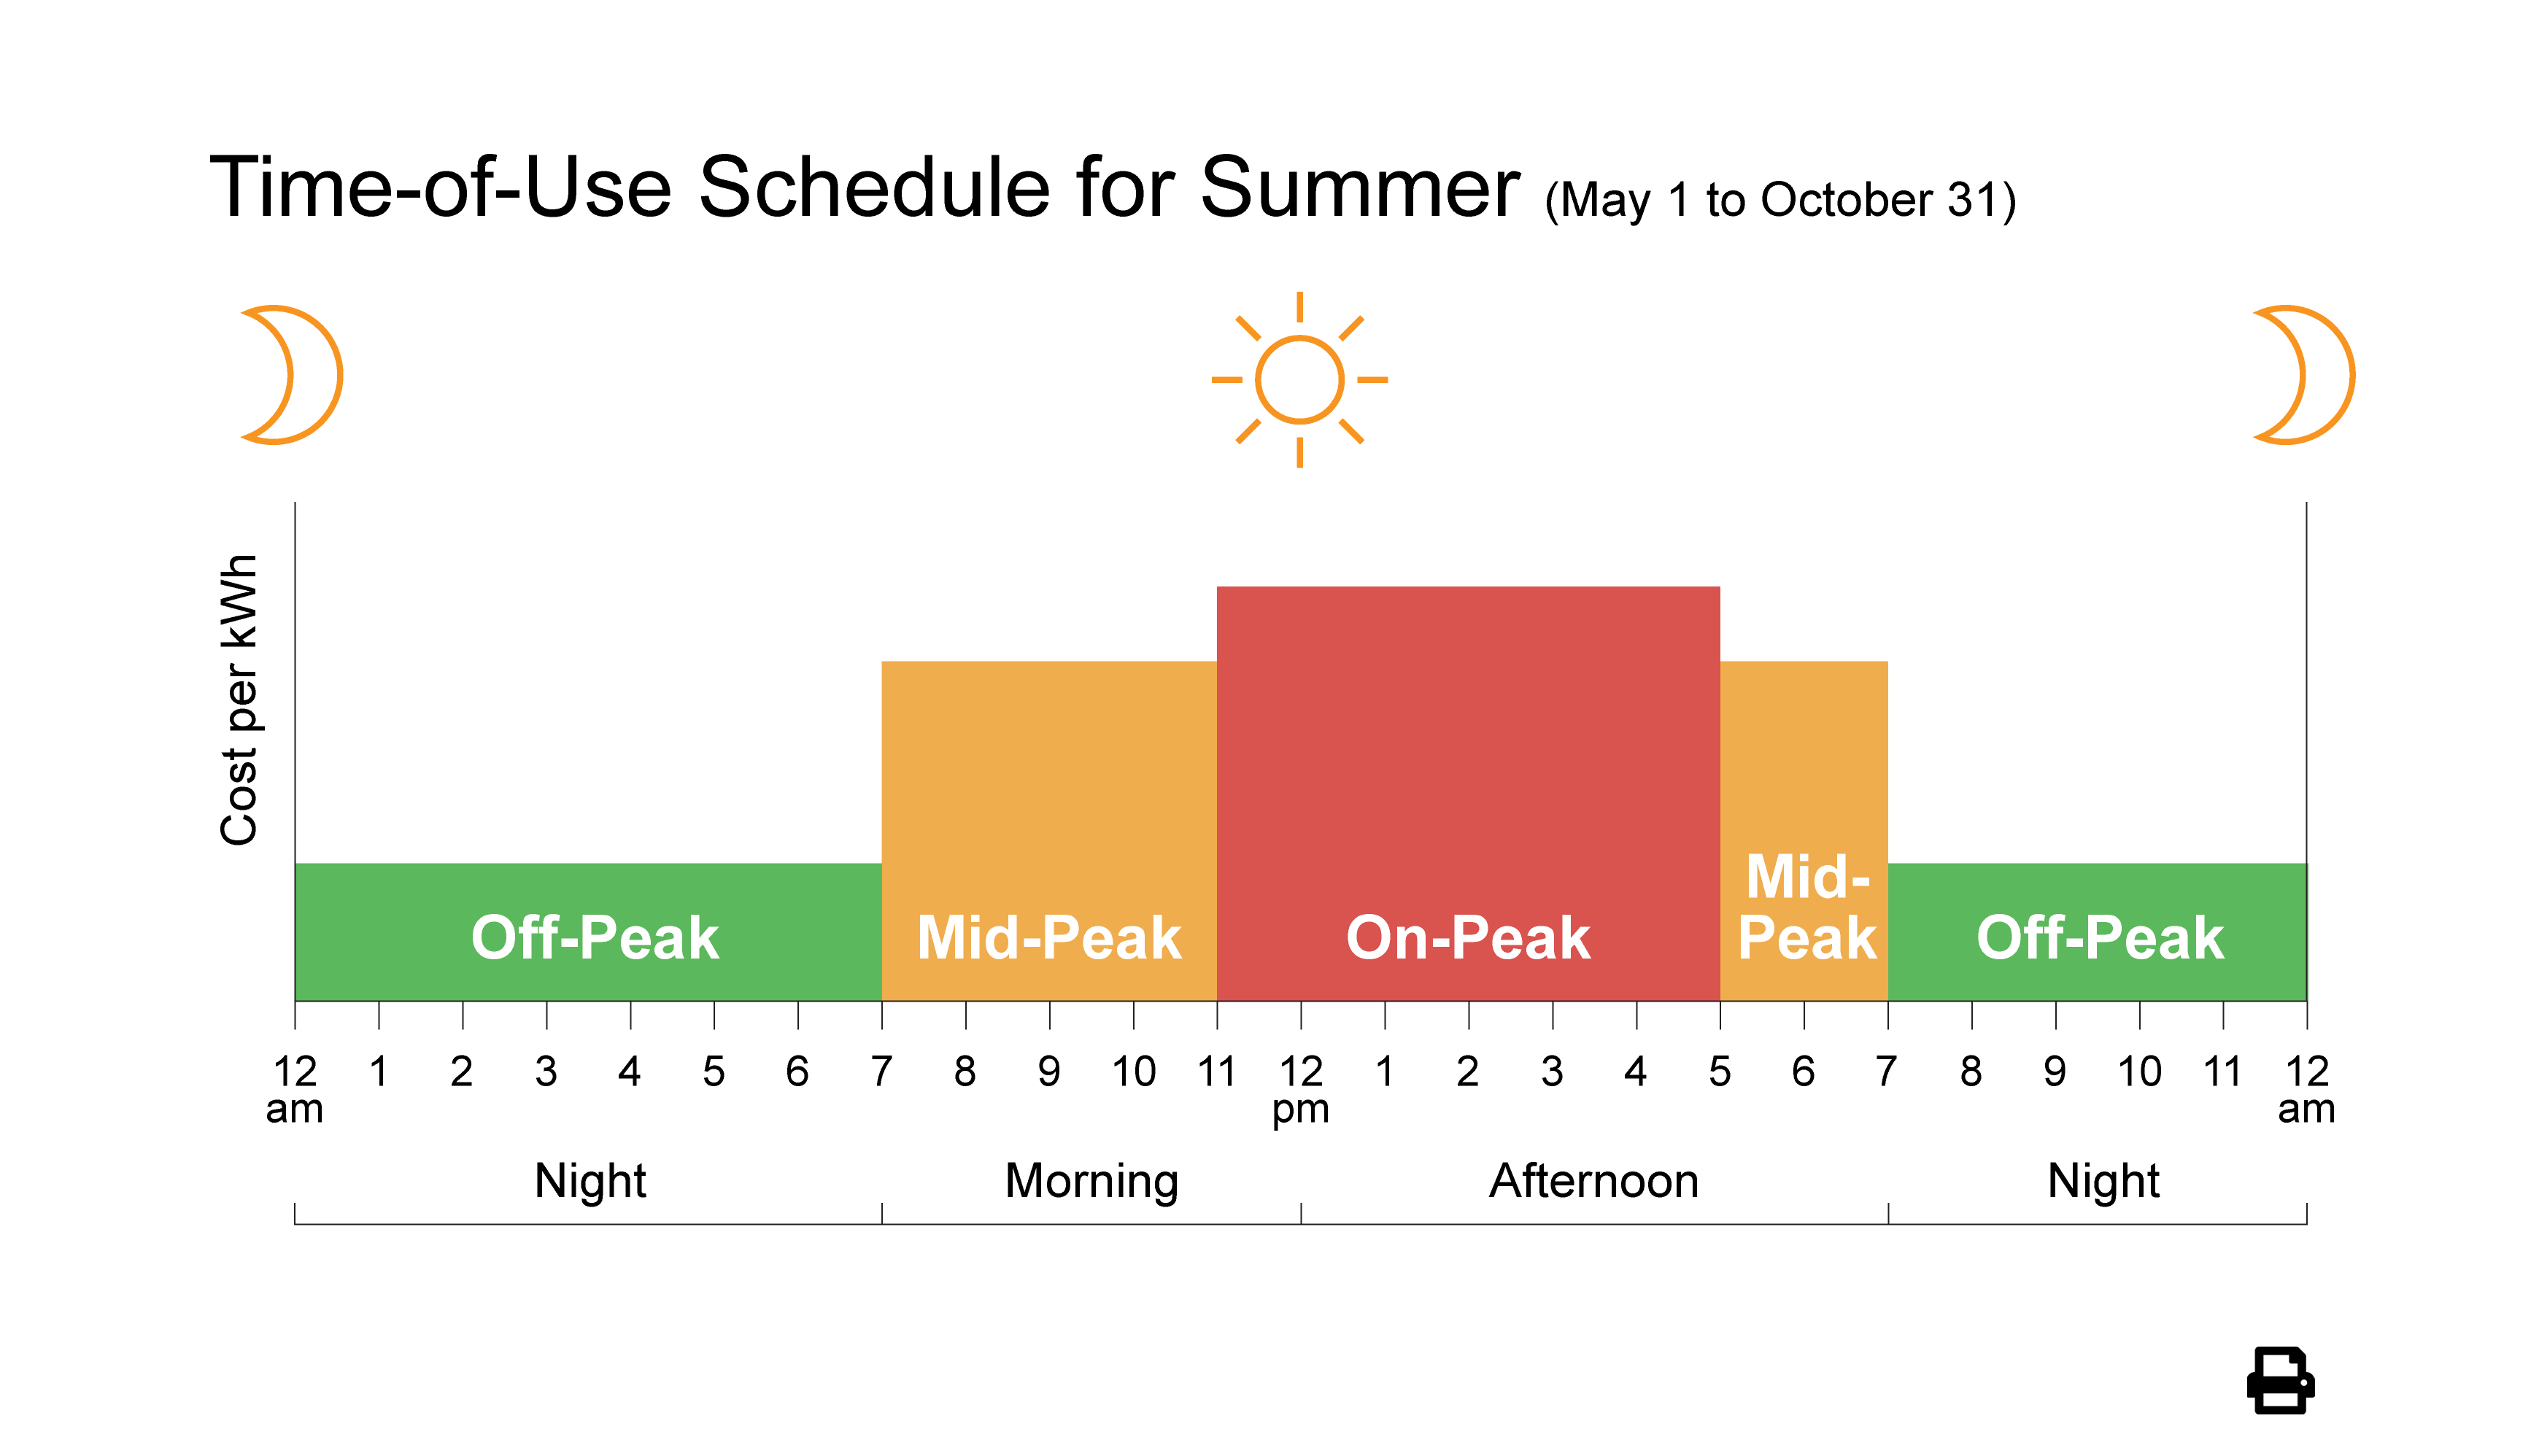 Summer Weekdays (May 1 to October 31)